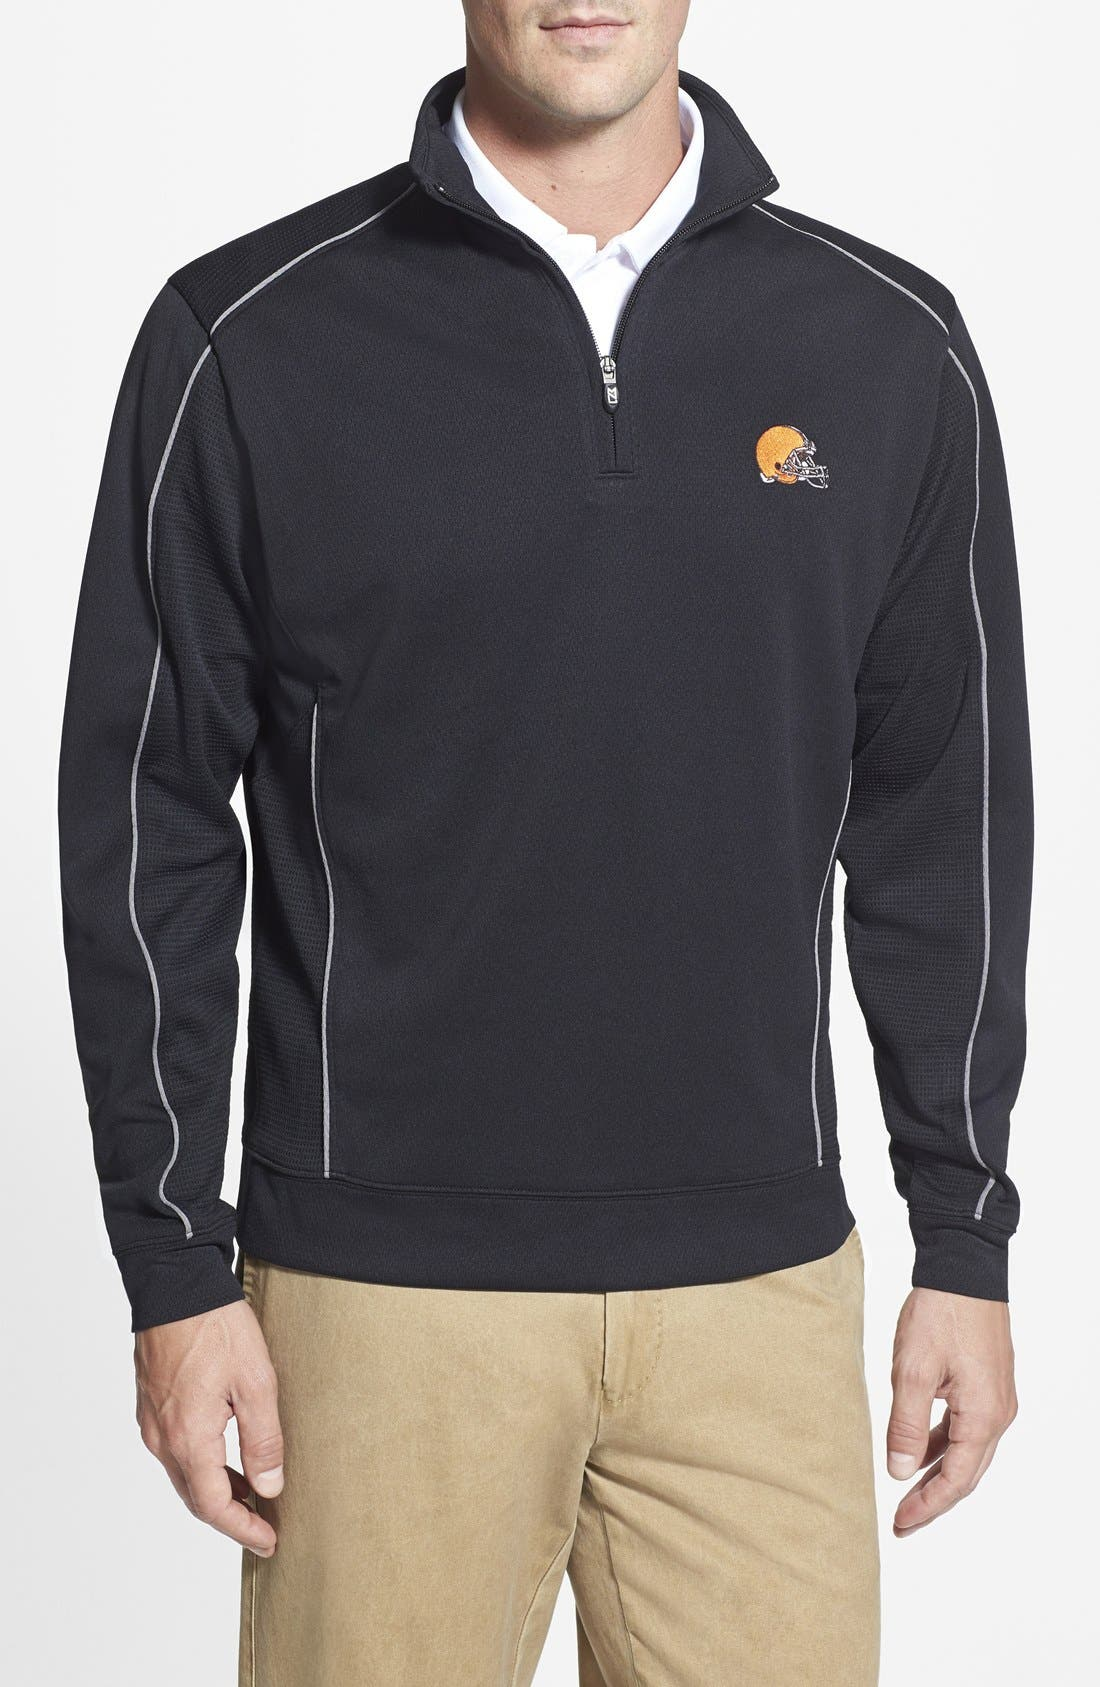 Cleveland Browns - Edge DryTec Moisture Wicking Half Zip Pullover,                         Main,                         color, 001